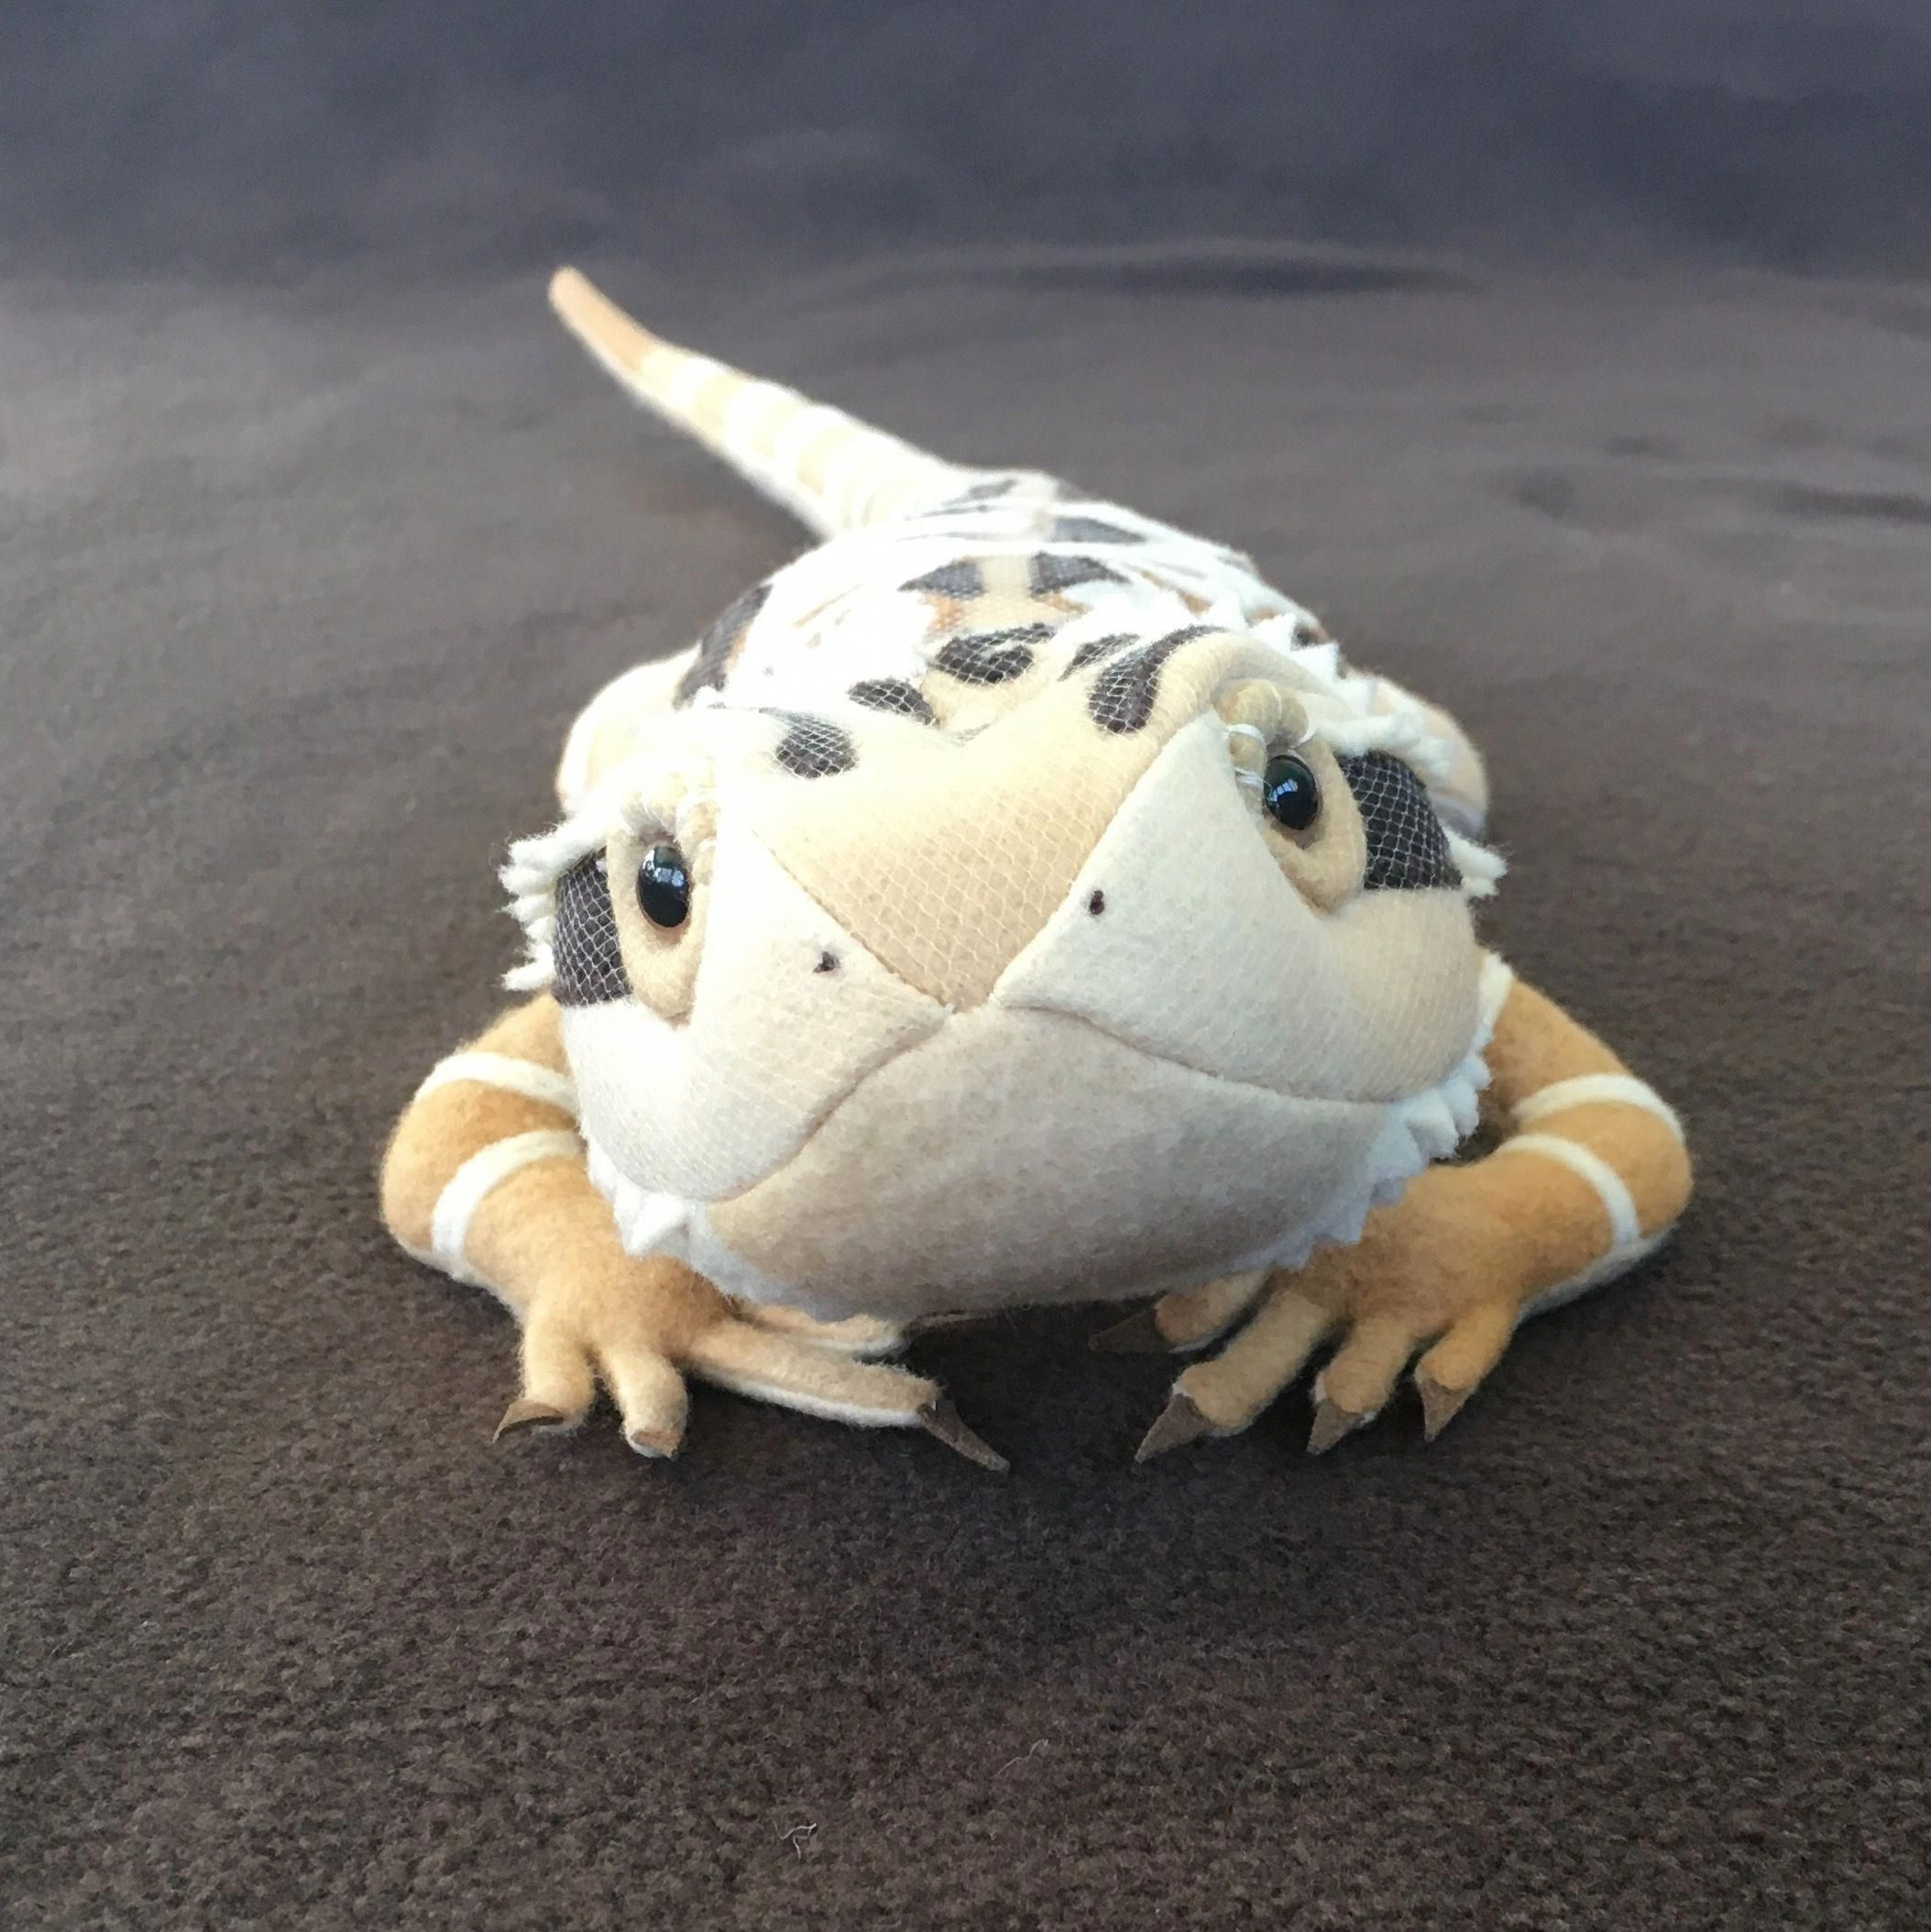 Bearded Dragon Soft Sculpture By Sew Thrifty Couture, LLC